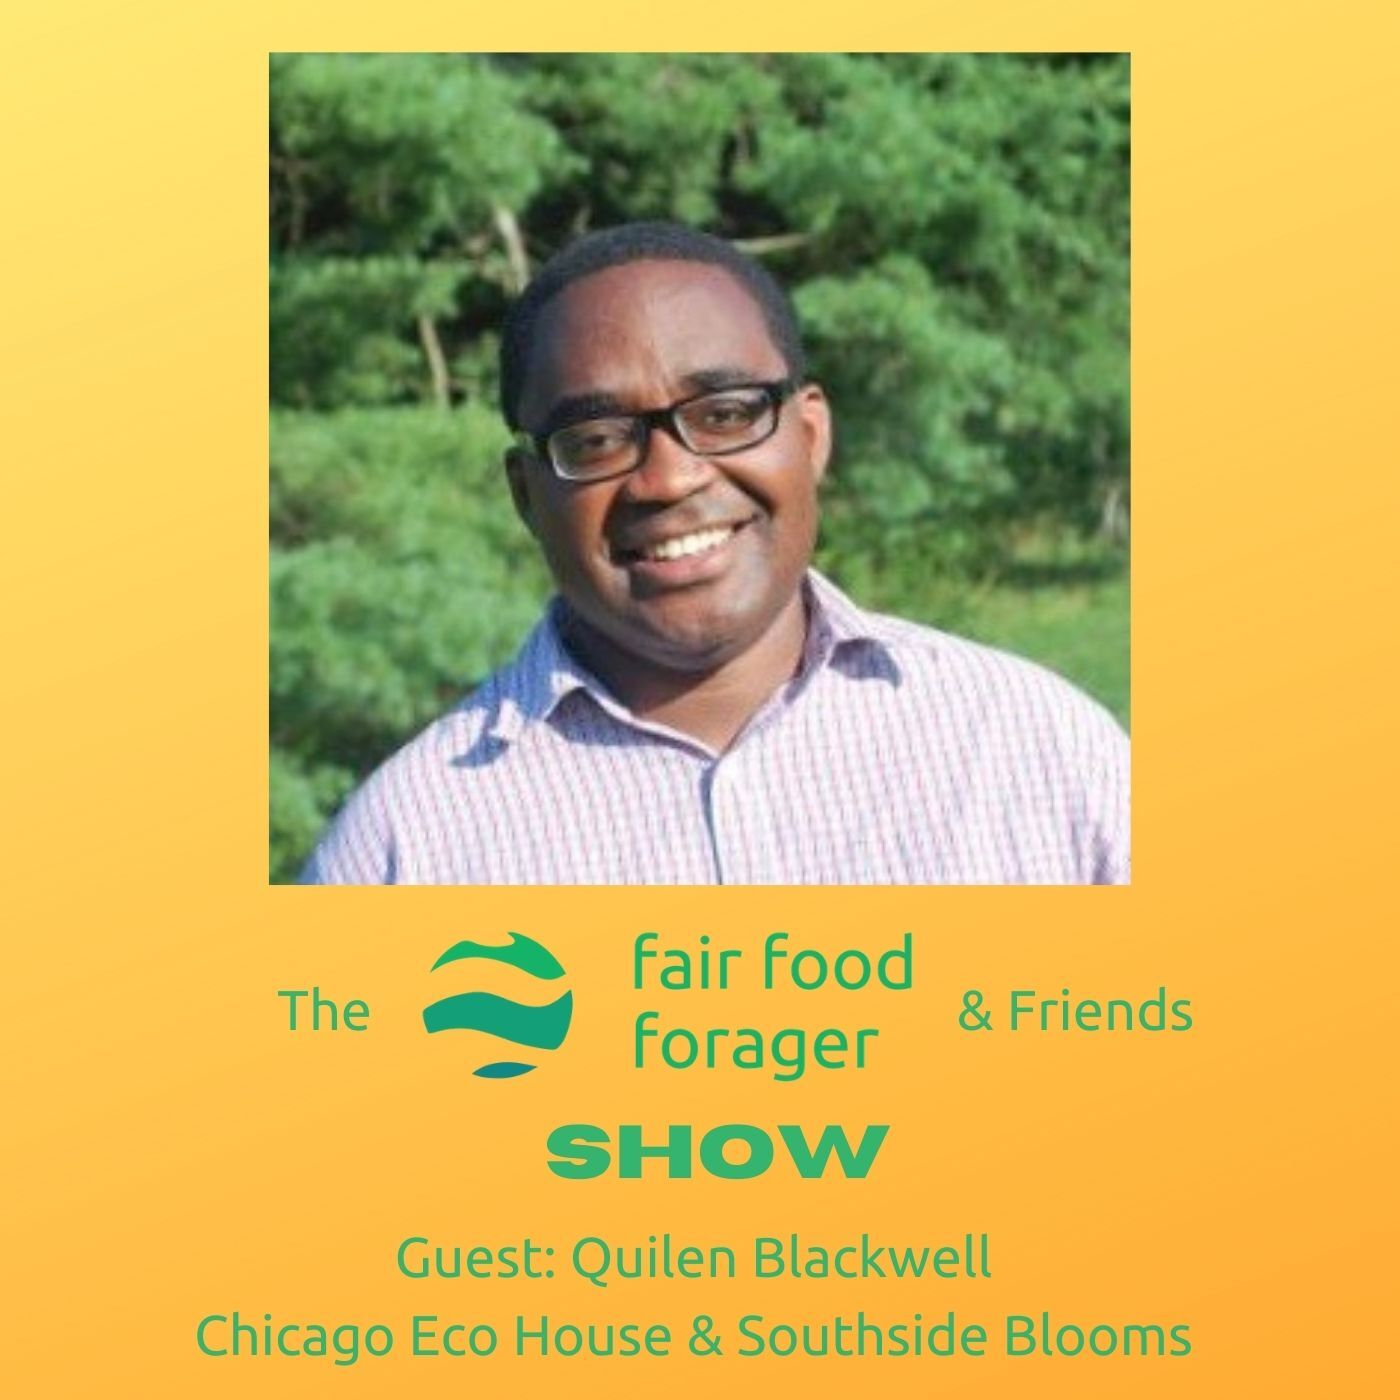 #30 Quilen Blackwell - Chicago Eco House, From sleeping in your car to transforming lives & communities